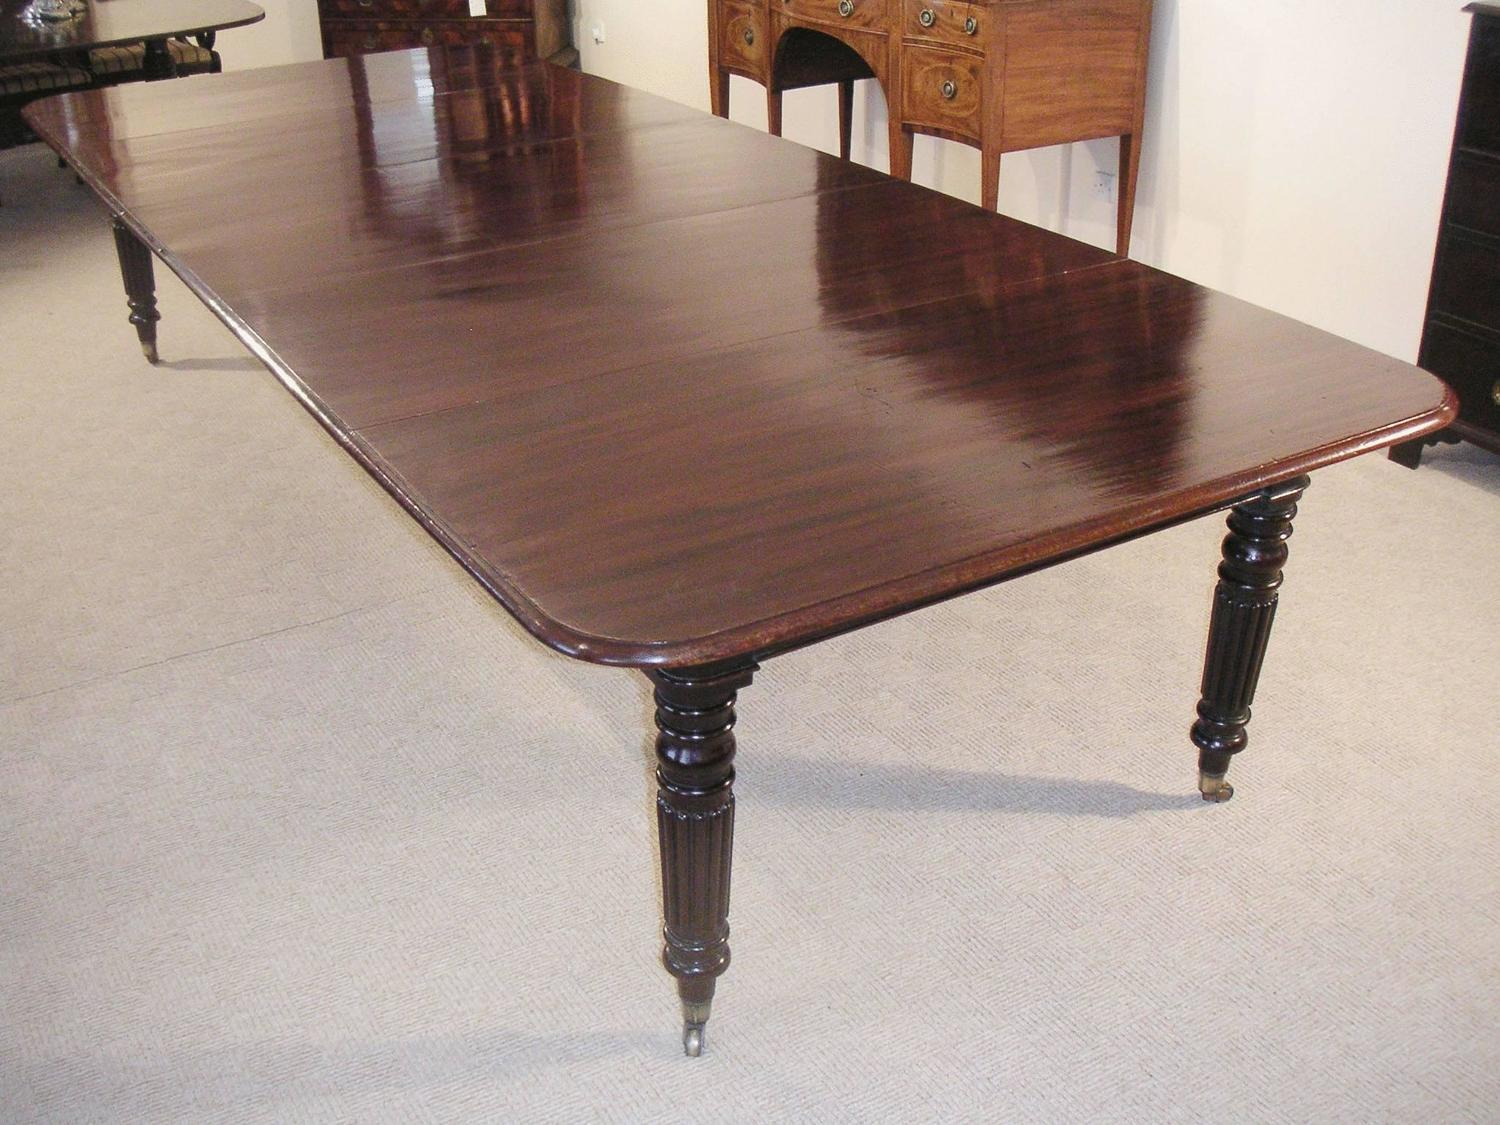 Mahogany Extending Dining Table To Seat 10 14 For Sale At 1stdibs